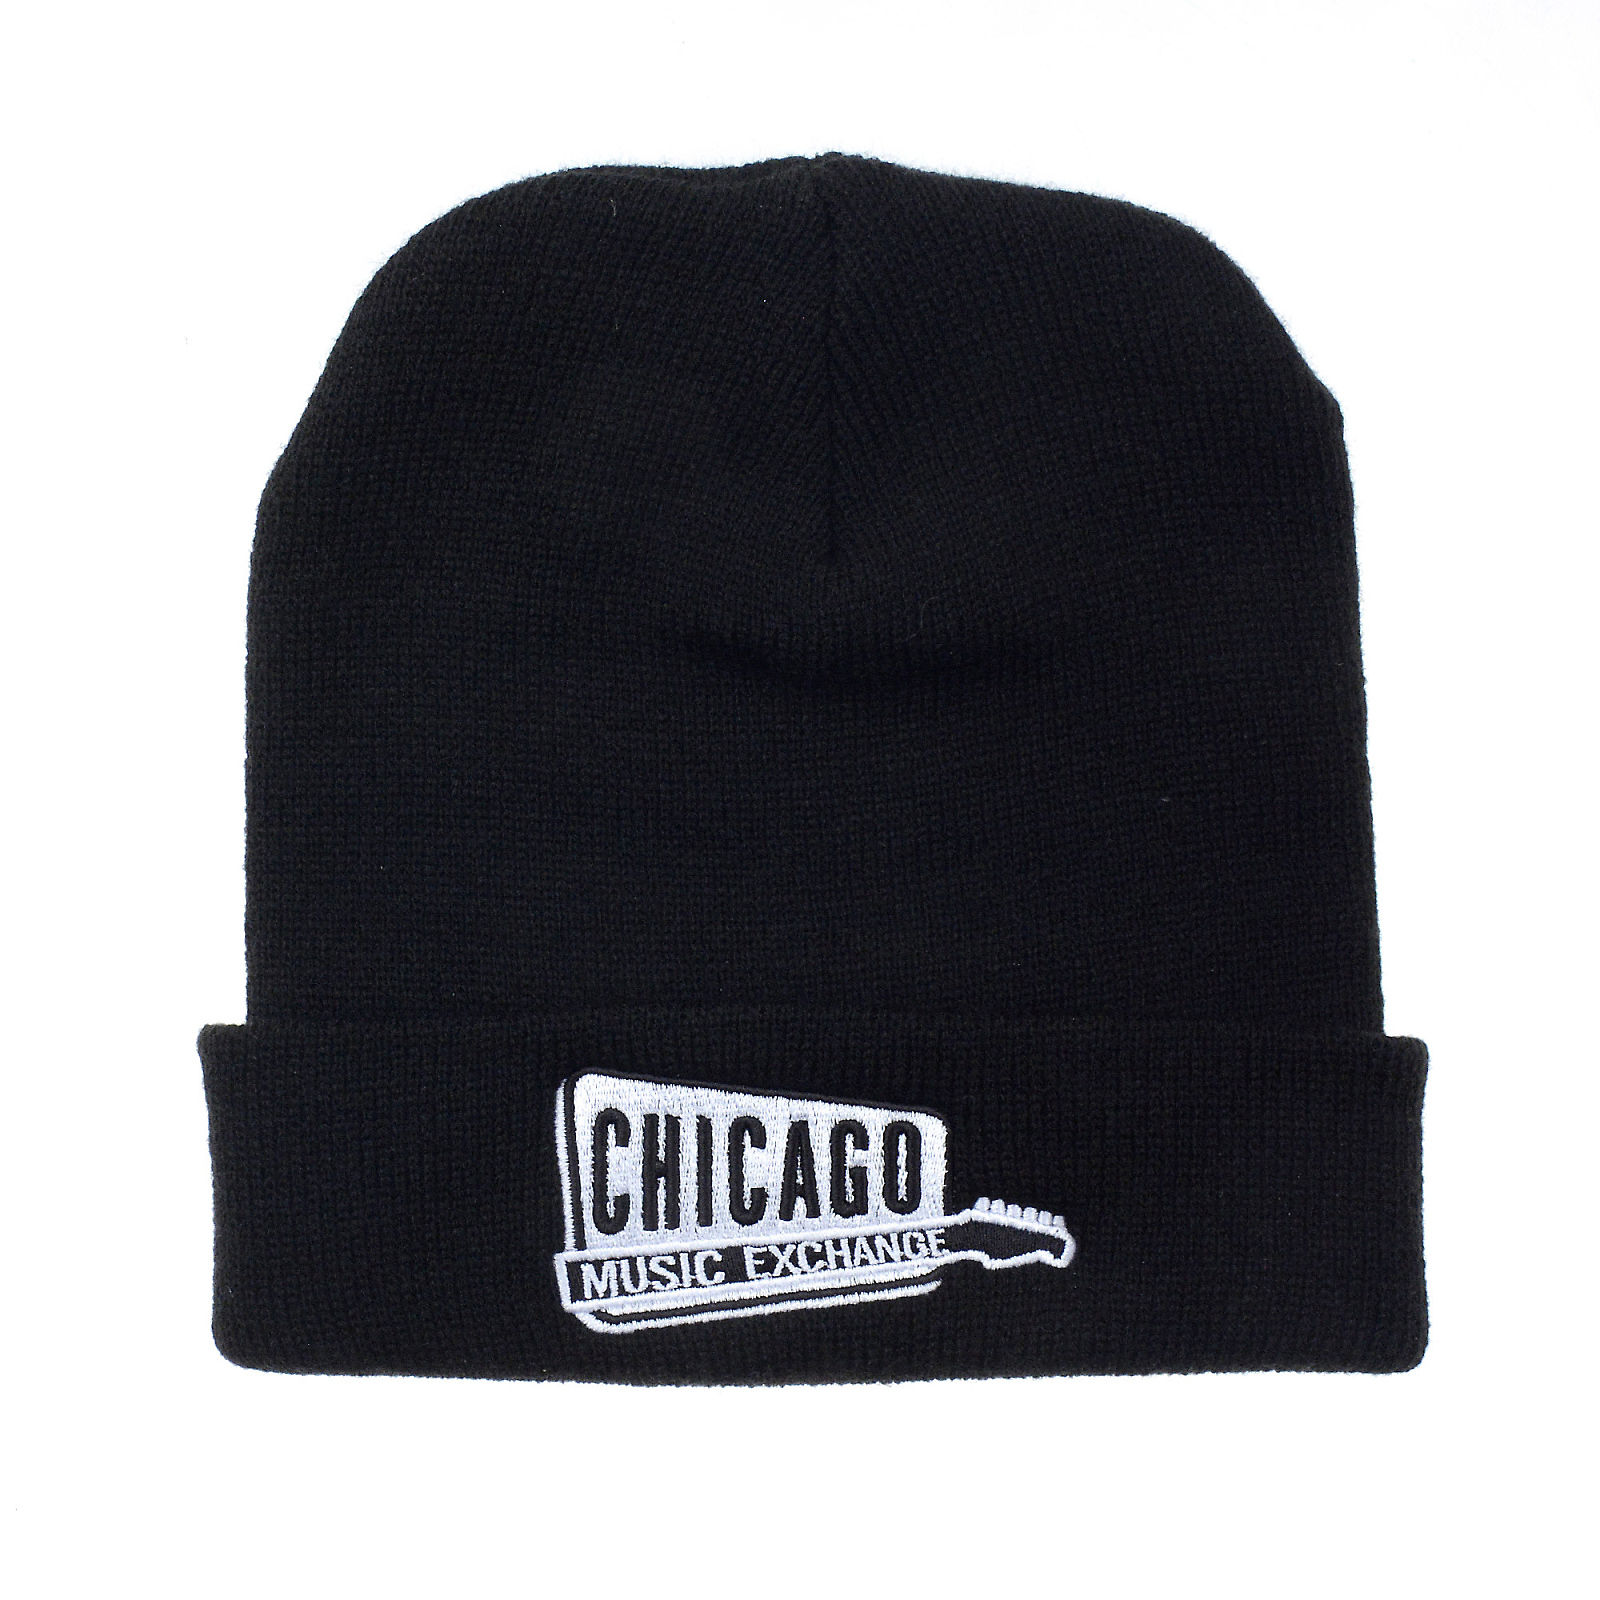 Chicago Music Exchange Winter Beanie Hat Black w White Embroidered Logo -  One Size Fits All   Black be4fe42ce8f